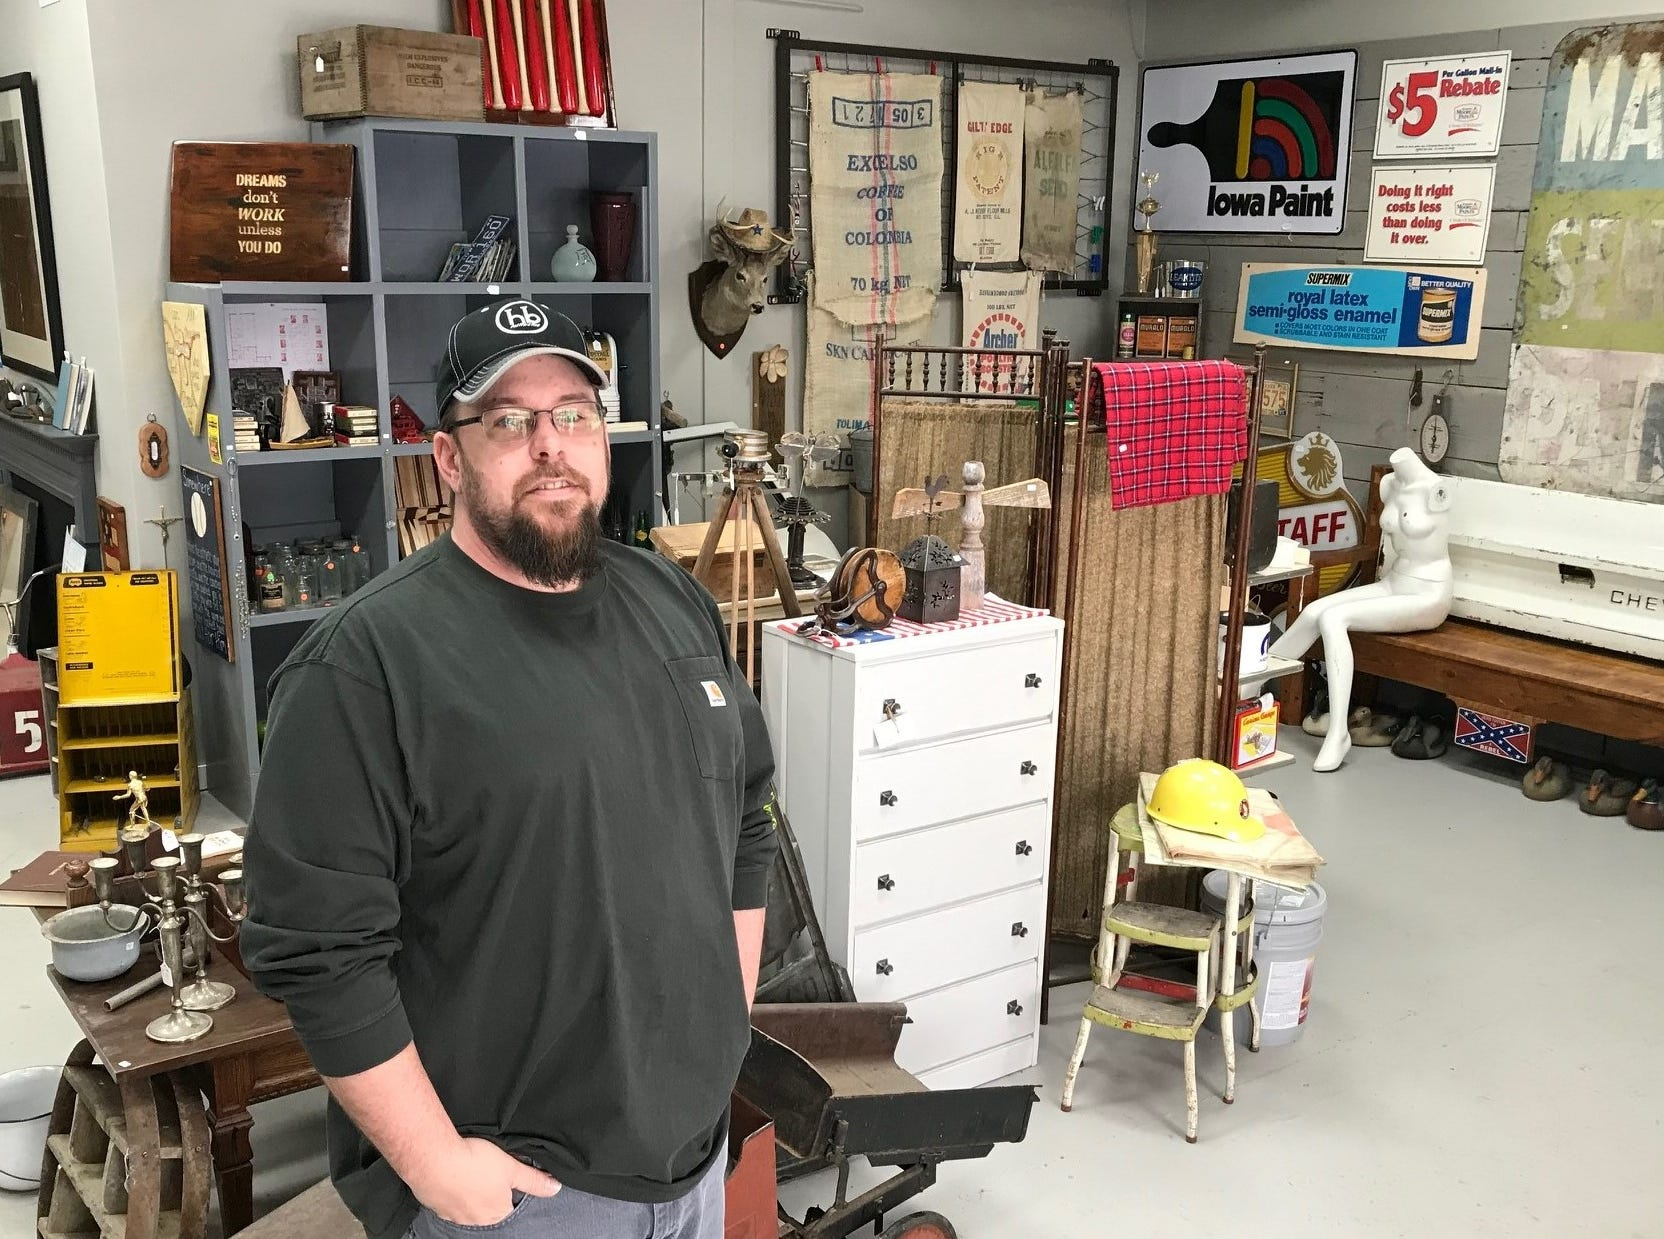 Shane Sutherland, owner of Hillbilly Paintworks Reclaim & Design and Repurpose Project Center in Sioux Falls, inside his store on South Cliff Avenue.